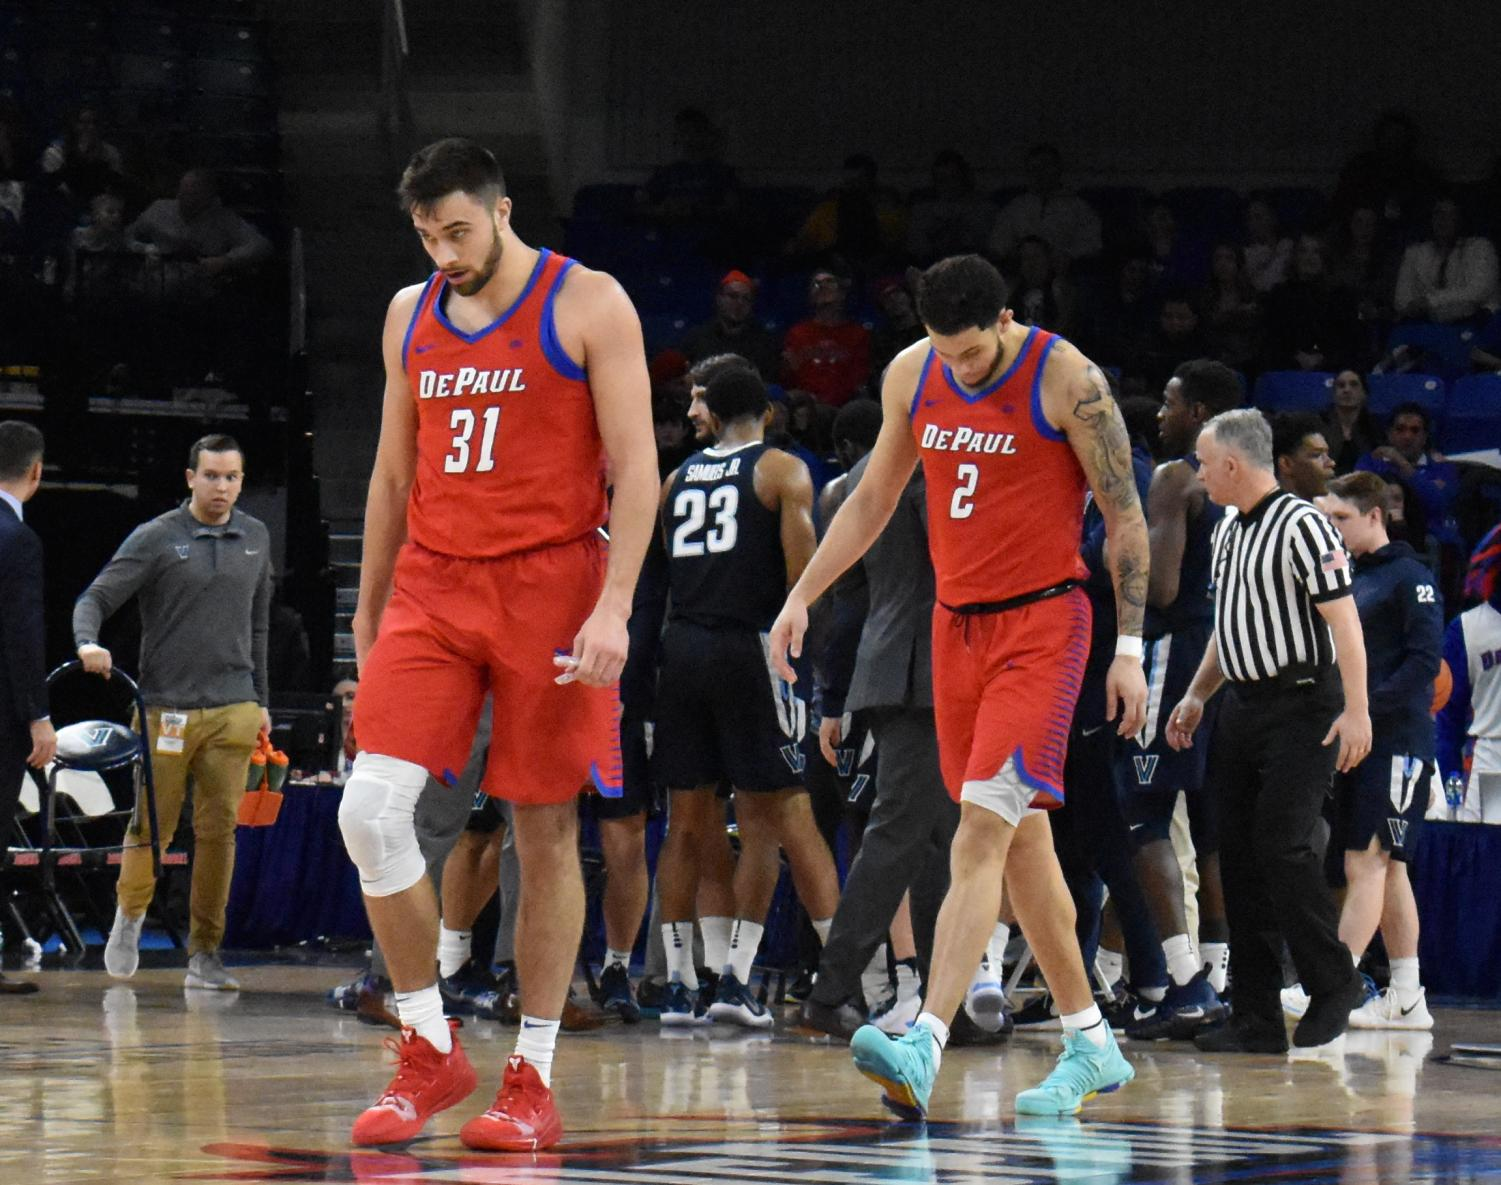 DePaul sophomore forward Jaylen Butz and senior guard Max Strus head to an official television timeout during the Blue Demons 86-74 loss against Villanova on Wednesday night. Andrew Hattersley I The DePaulia